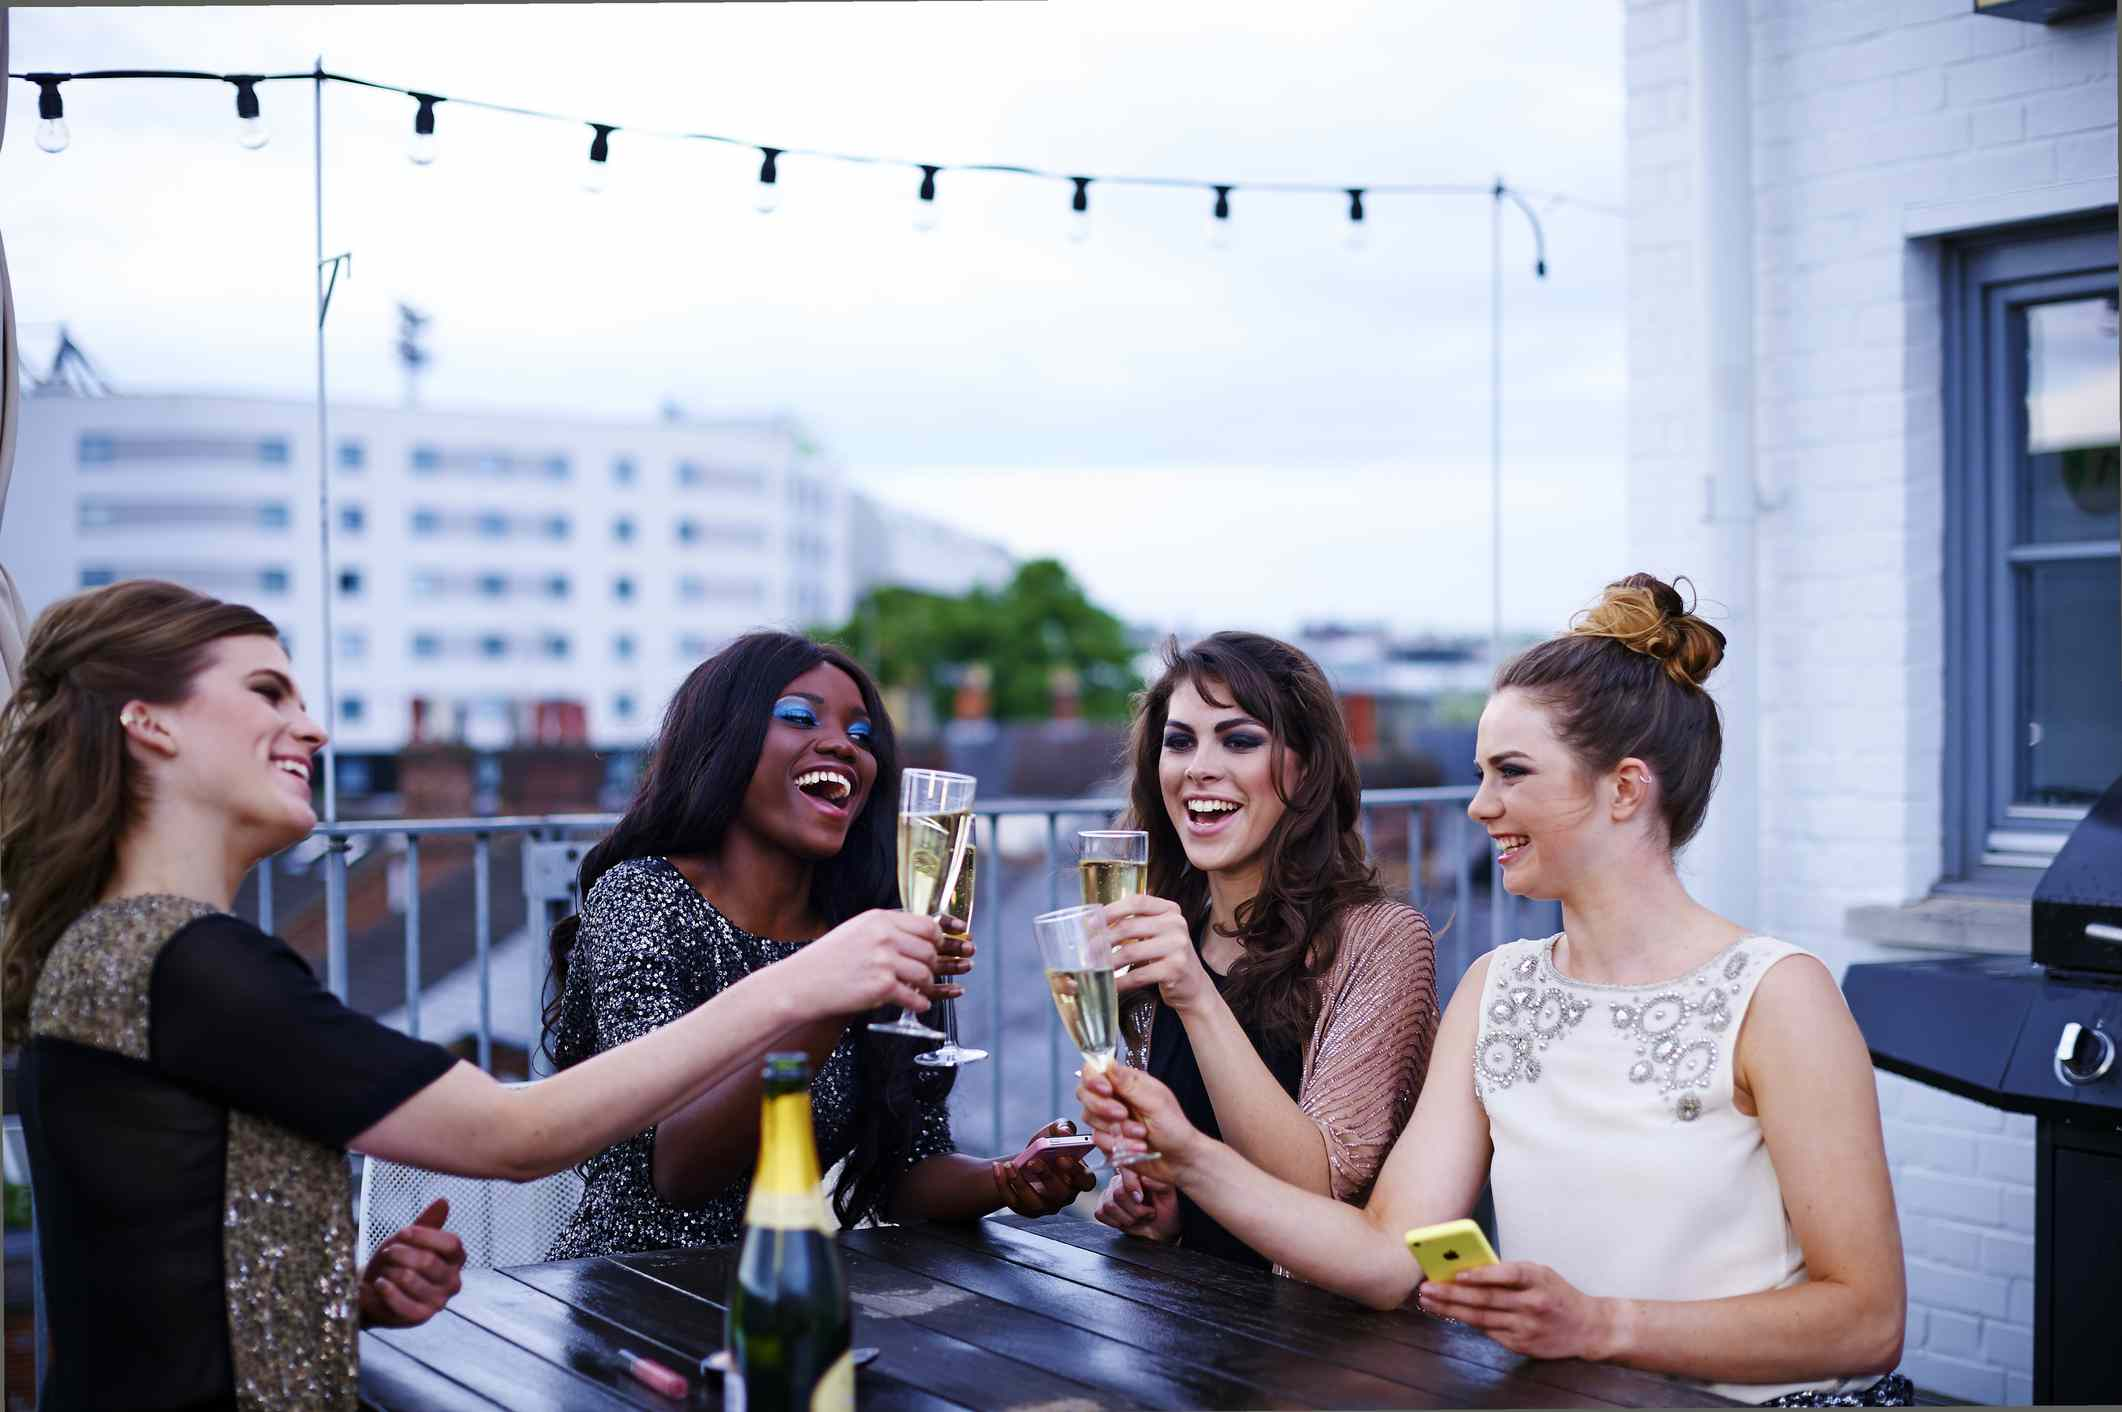 Group of women clink Champagne glasses on a rooftop